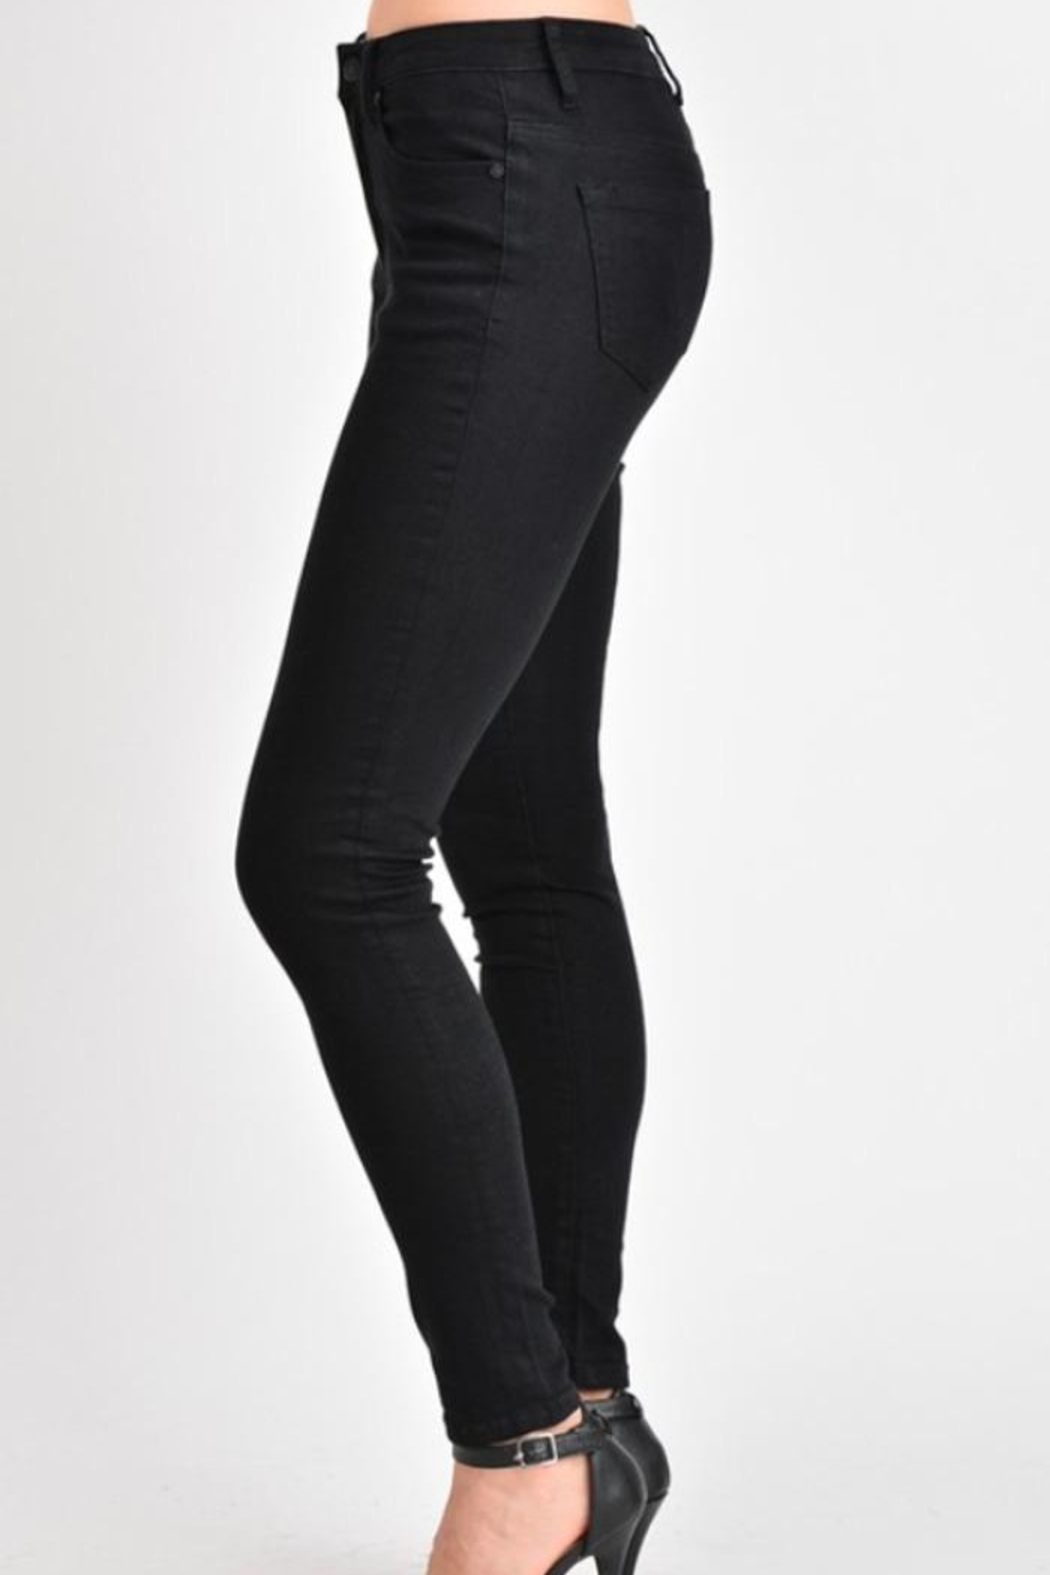 KanCan High-Waisted Black Jeans - Side Cropped Image